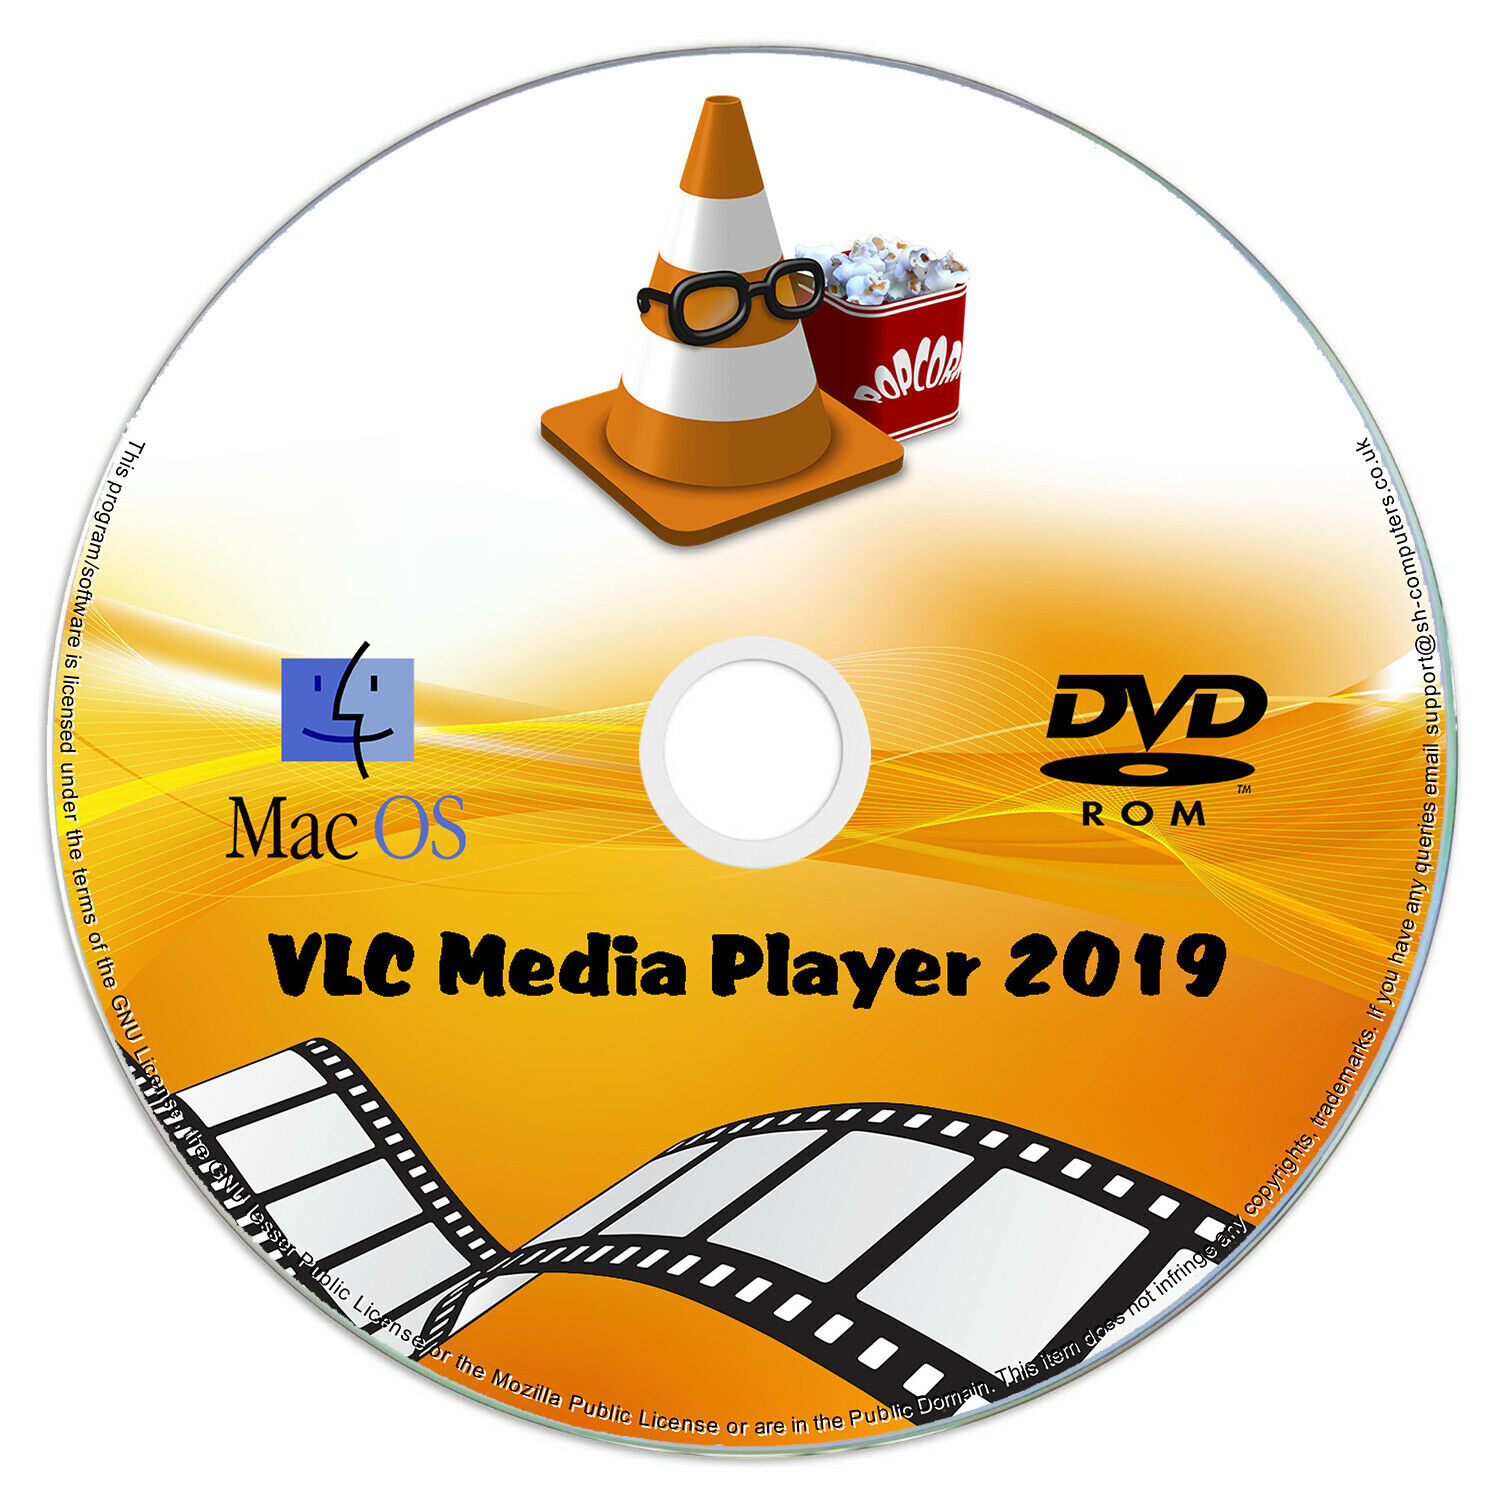 VLC Media Player 2019 SOFTWARE - Play Any Video / DVD / Music / Audio MacOS